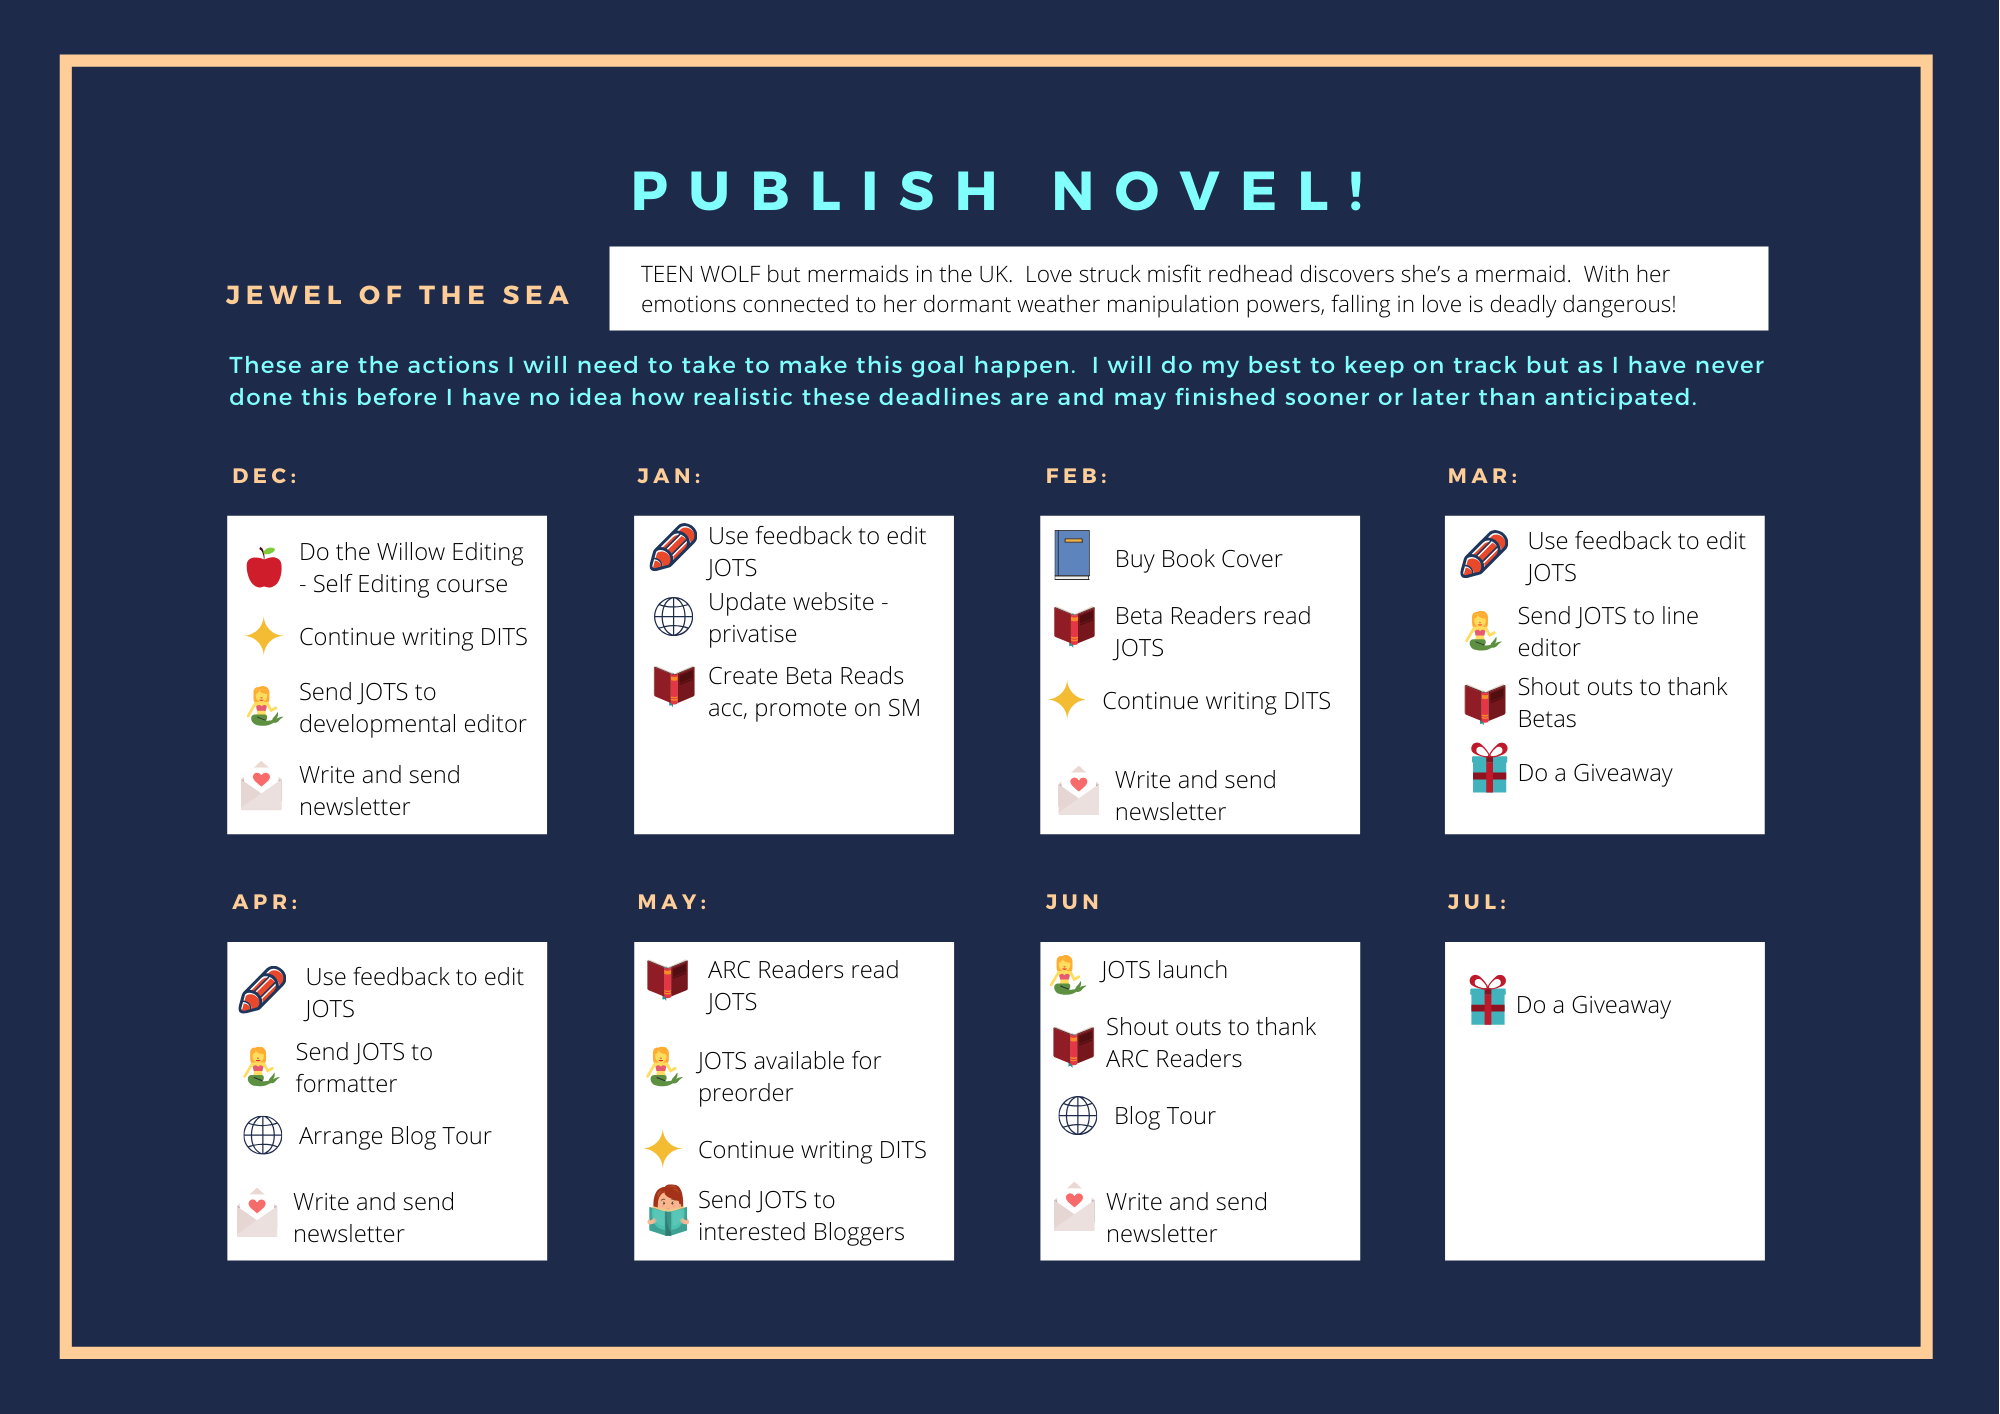 Publish Novel info graphic